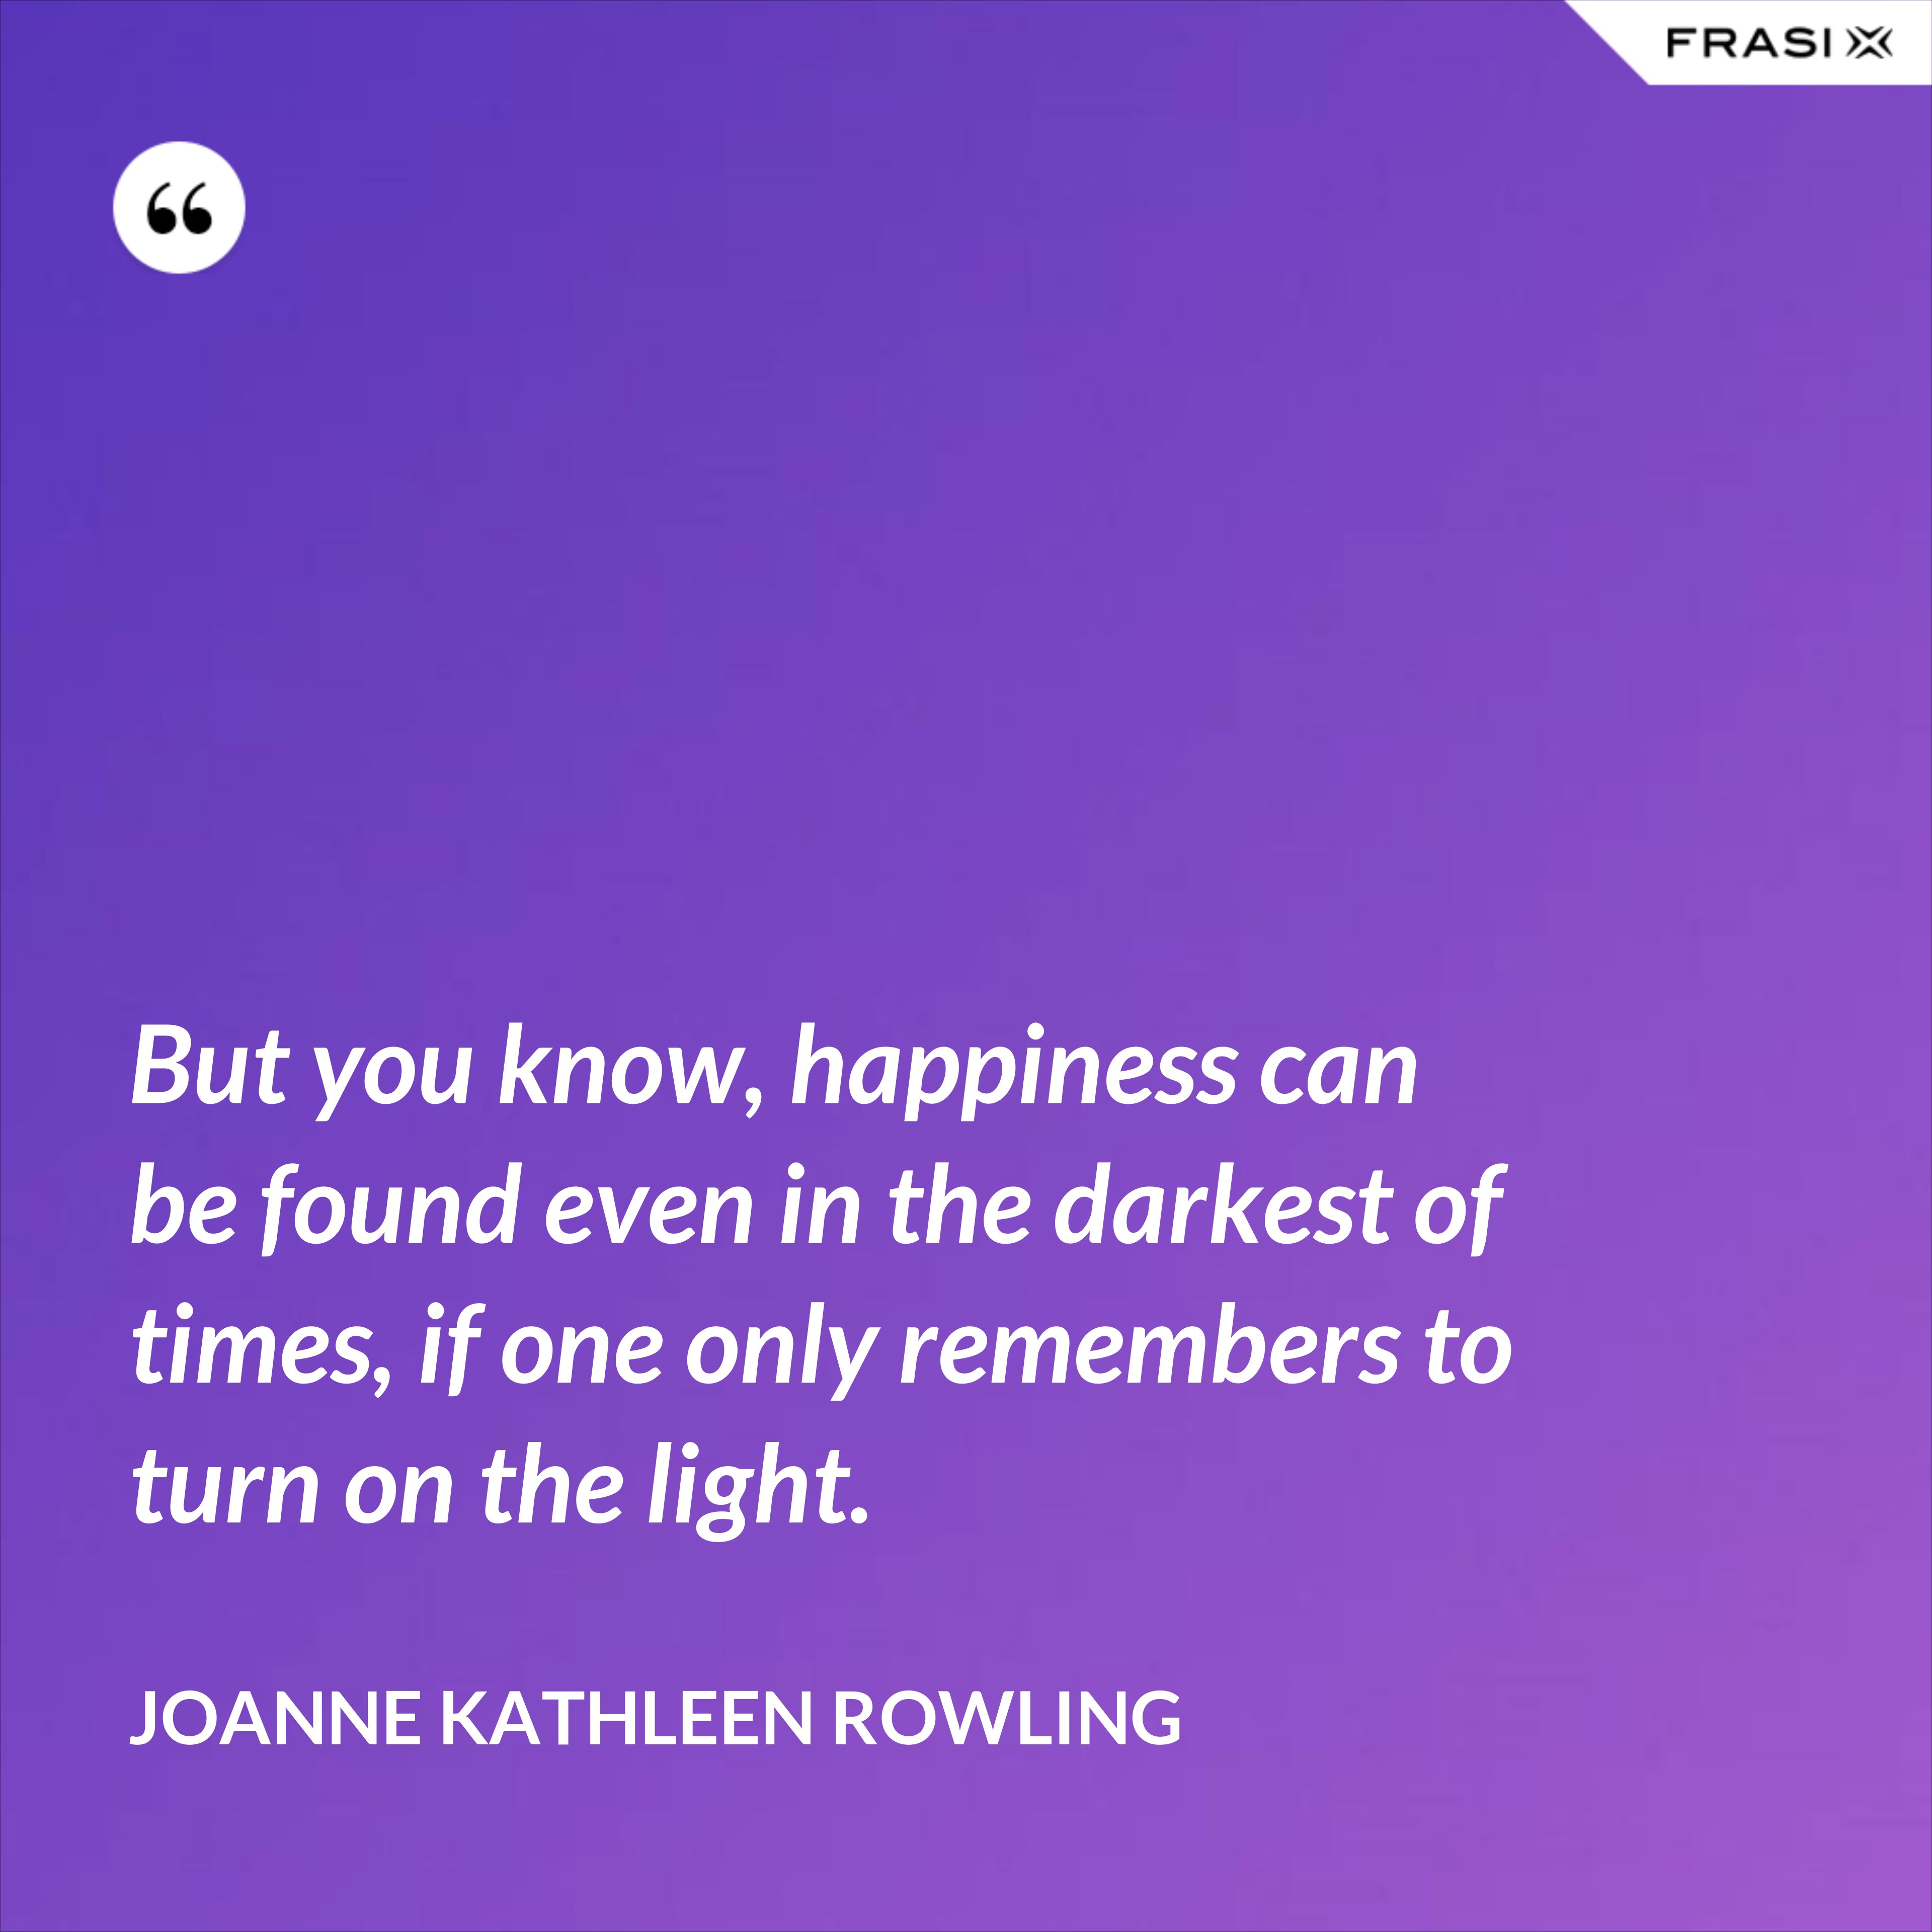 But you know, happiness can be found even in the darkest of times, if one only remembers to turn on the light. - Joanne Kathleen Rowling